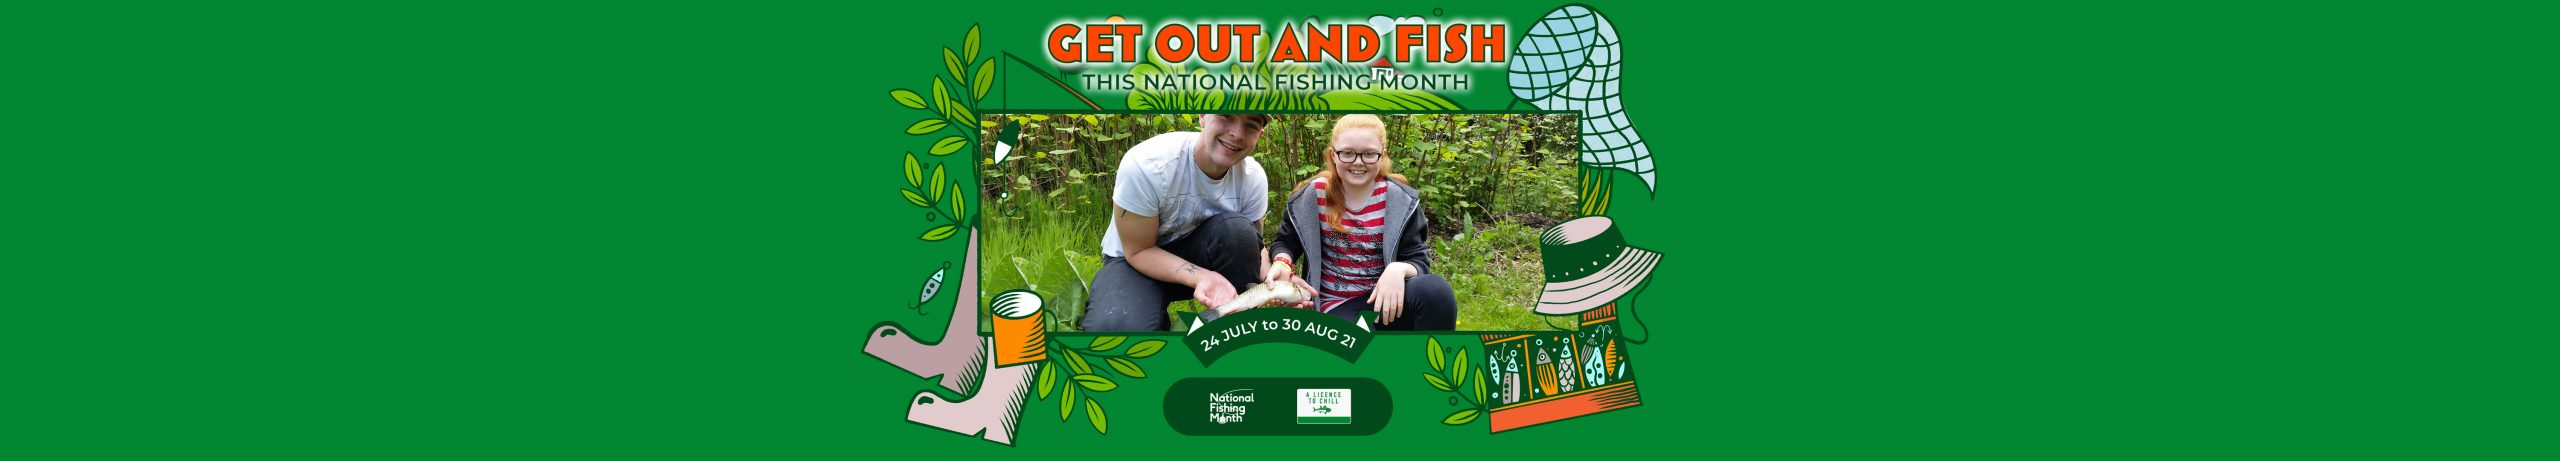 Get Fishing | National Fishing Month Events -Banner Frame-1